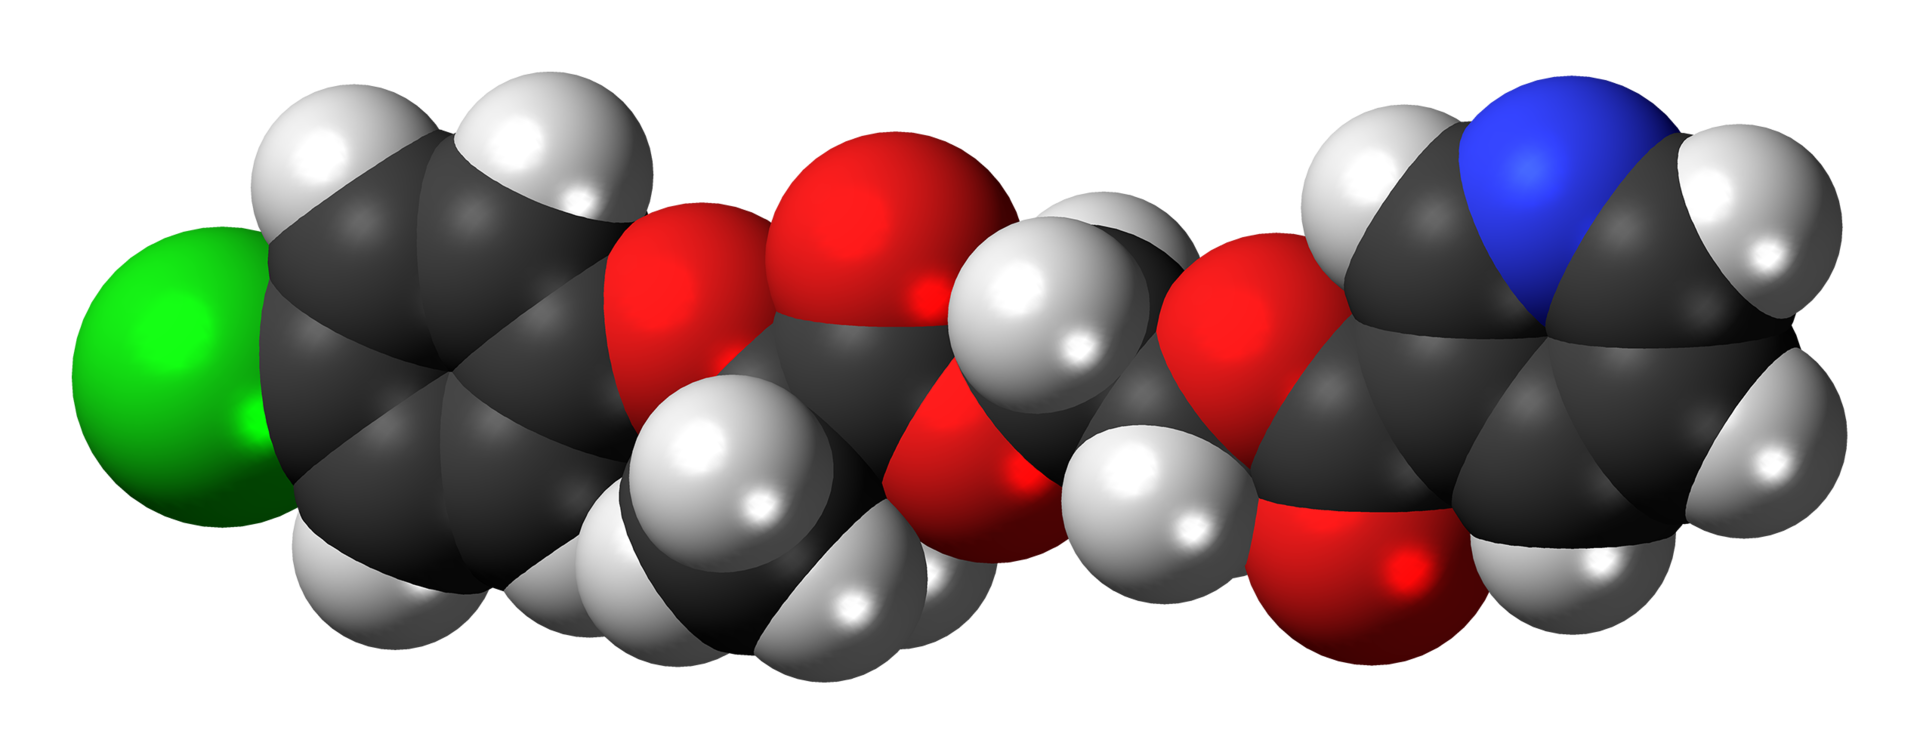 Space-filling model of the etofibrate molecule